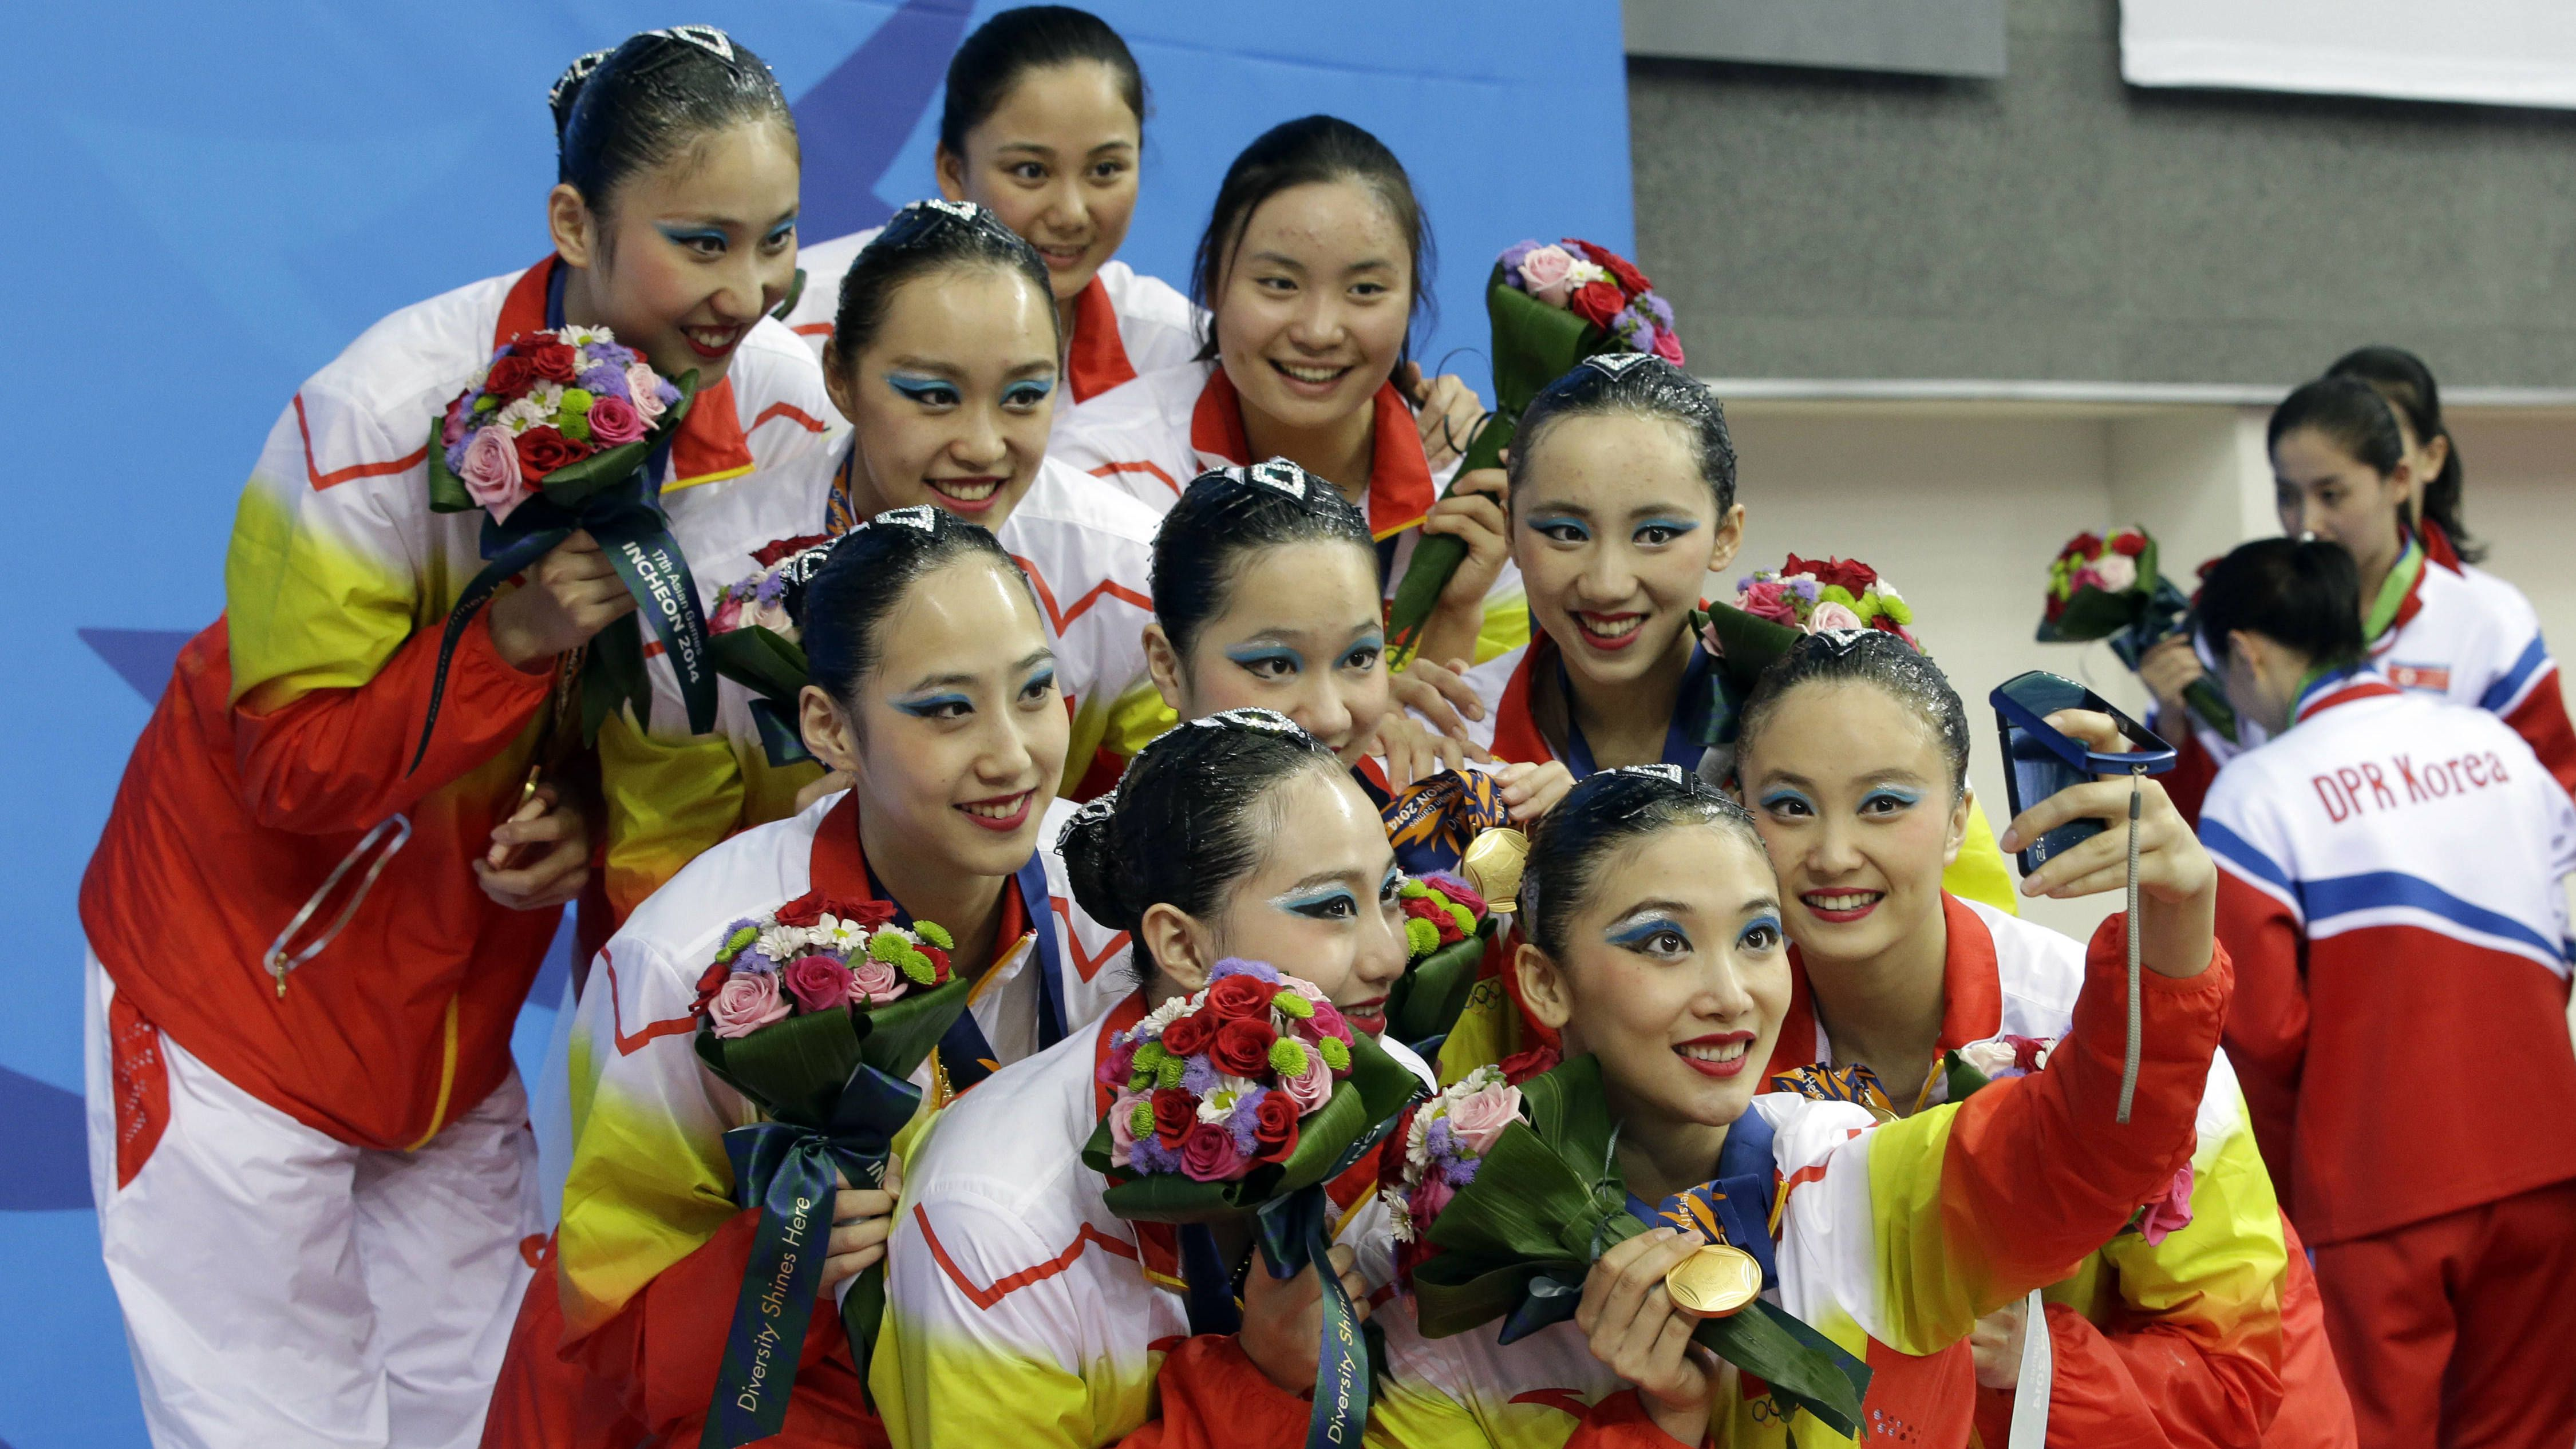 Chinese synchronized swimming team members take selfie with their gold medals after their synchronized swimming team free routine at the 17th Asian Games in Incheon, South Korea, Monday, Sept. 22, 2014. (AP Photo/Lee Jin-man)